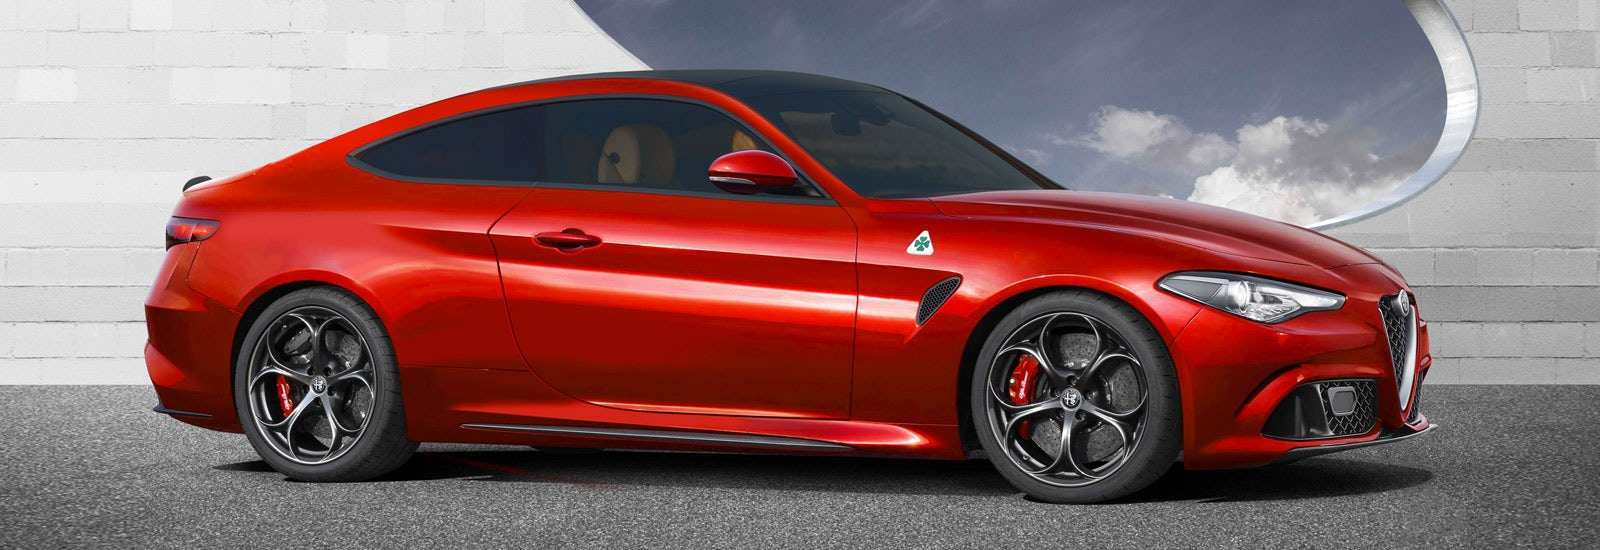 86 Concept of Alfa Gt 2019 Pricing for Alfa Gt 2019